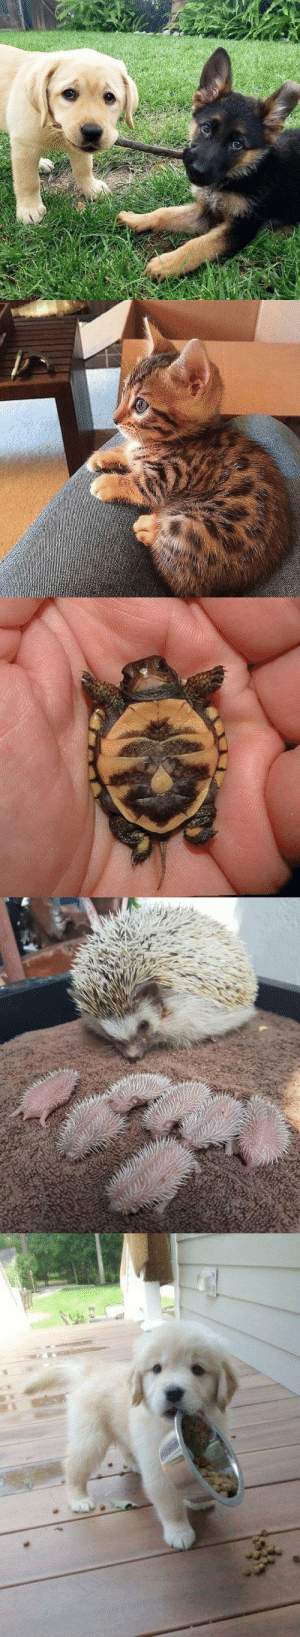 Oh my gosh, look at those baby animals: Oh my gosh, look at those baby animals